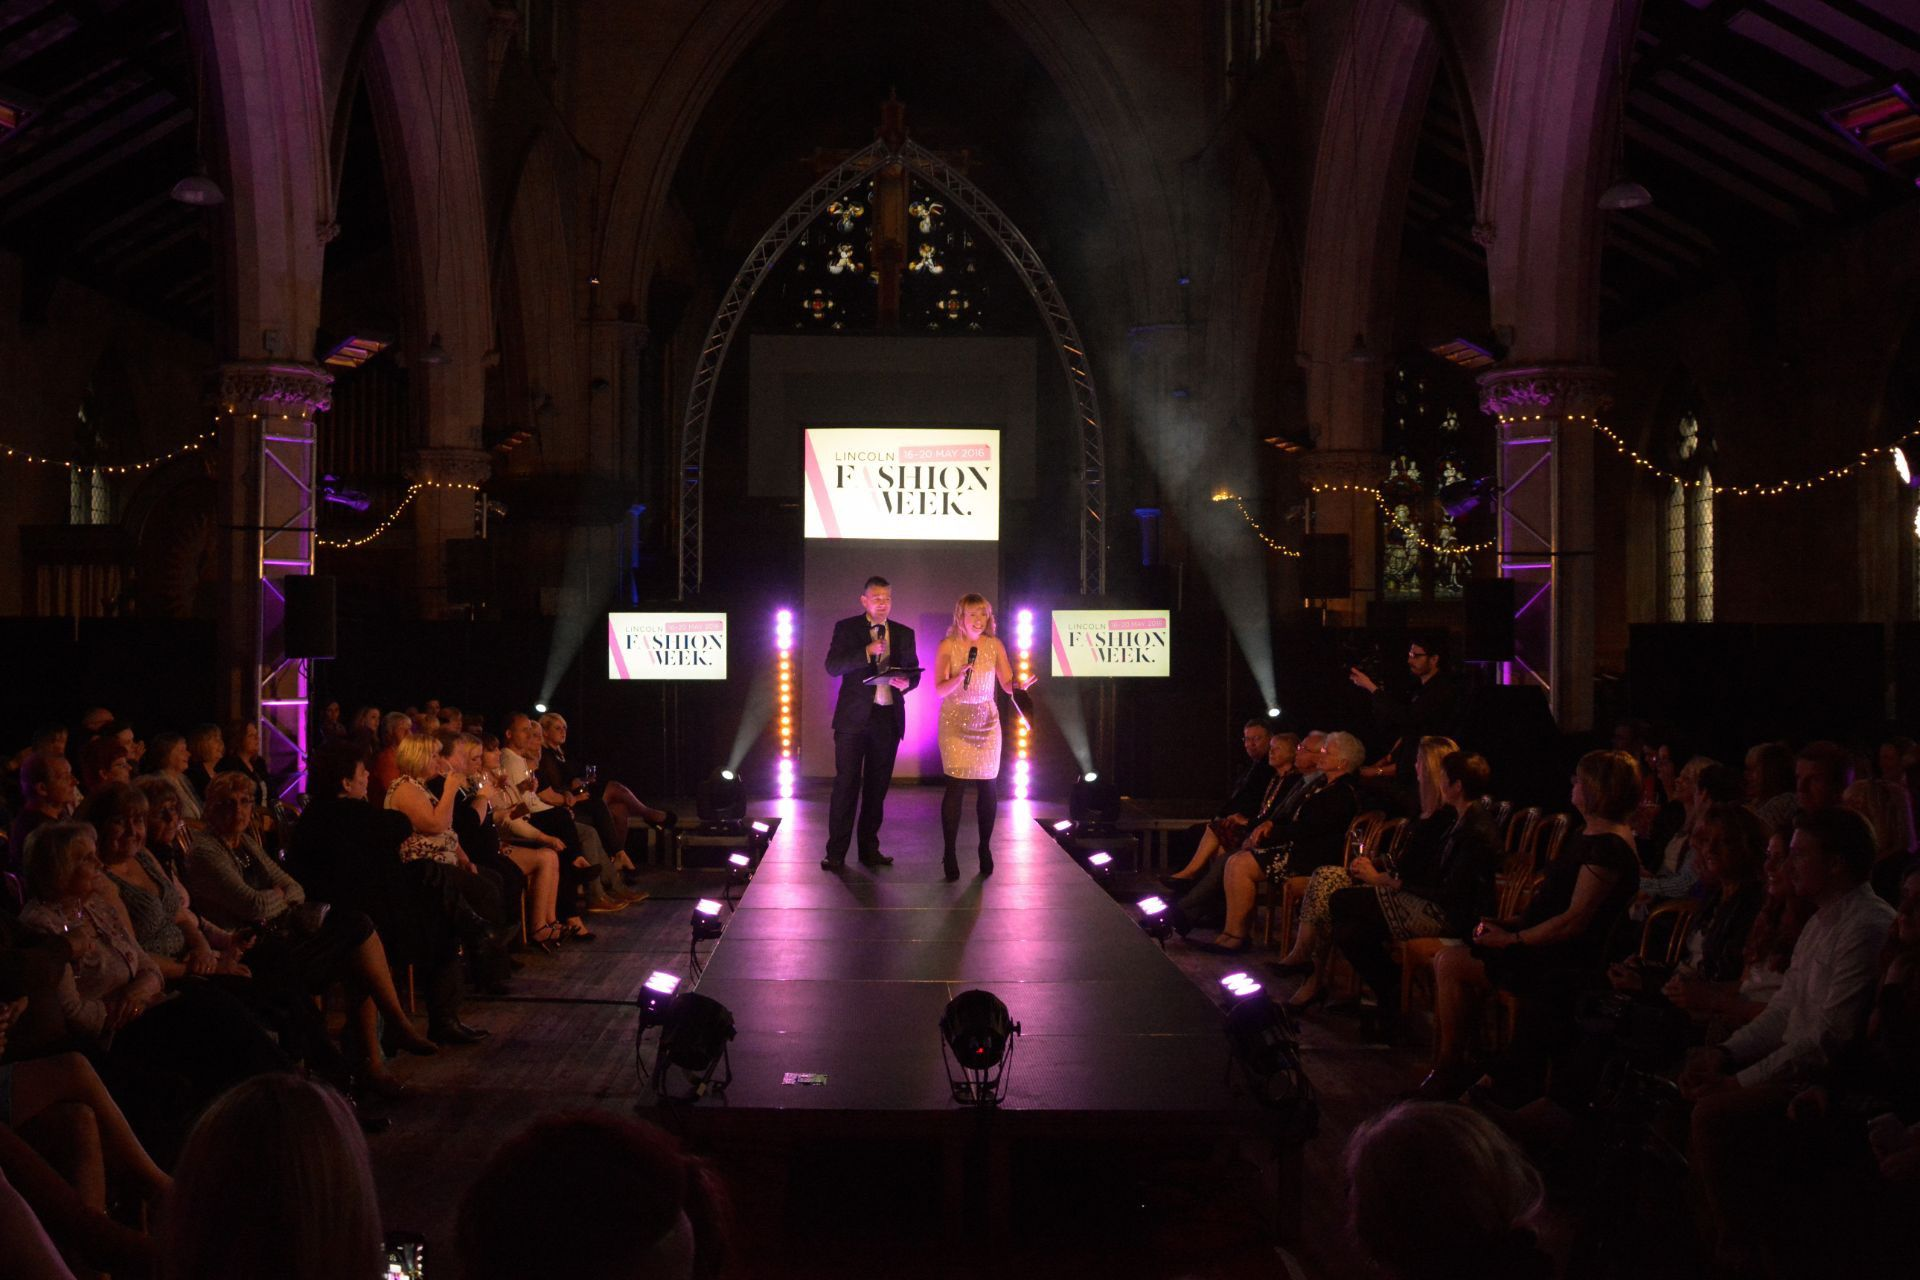 https://wearelava.co.uk/wp-content/uploads/2016/06/Lincoln_Fashion_Week_Finale.jpg